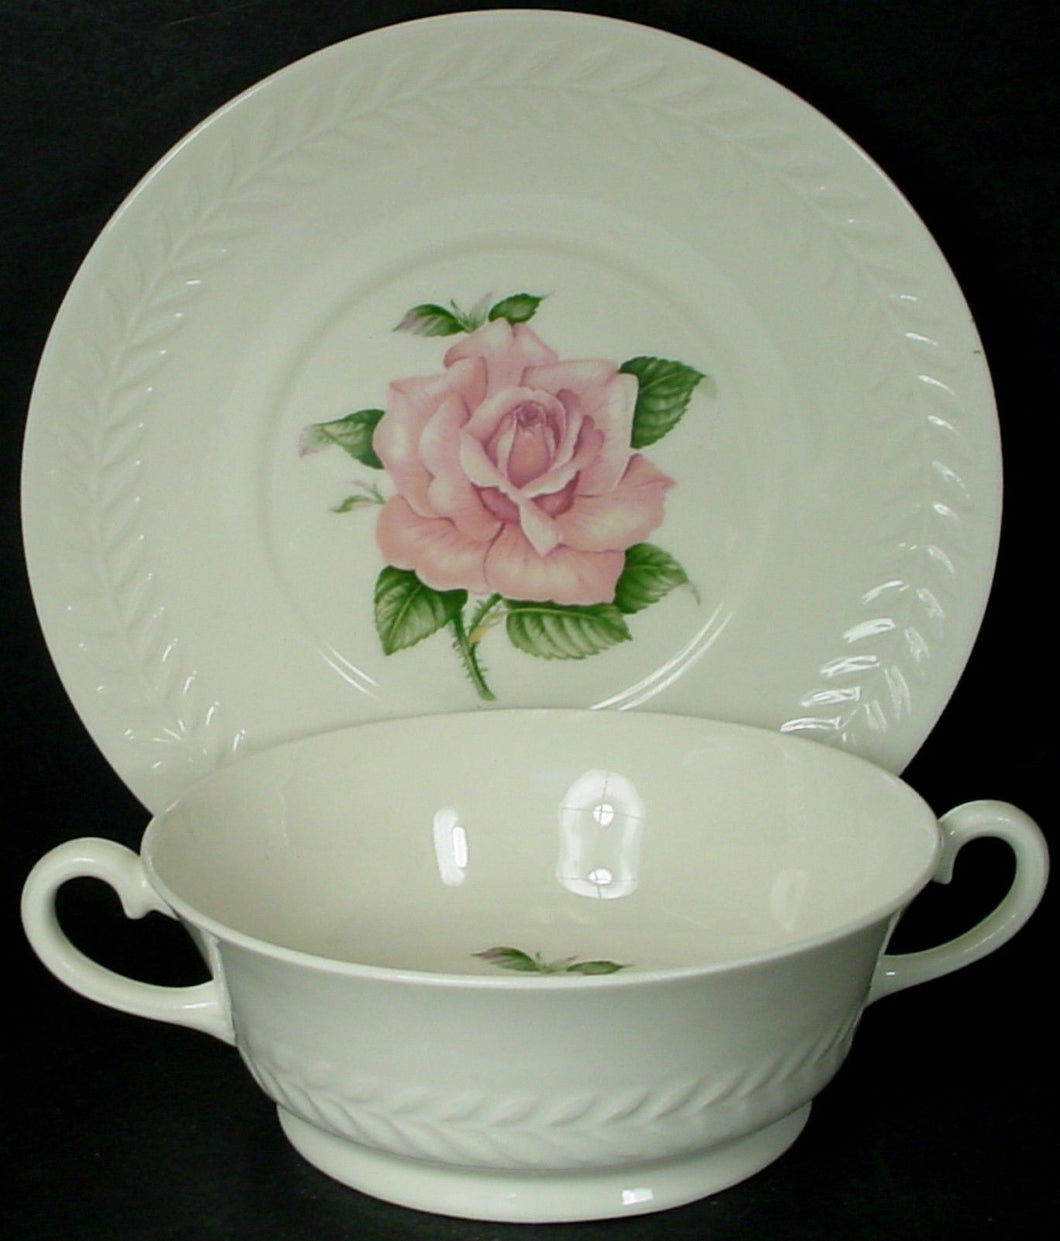 HAVILAND china REGENTS PARK ROSE pattern CREAM SOUP BOWL & SAUCER underplate